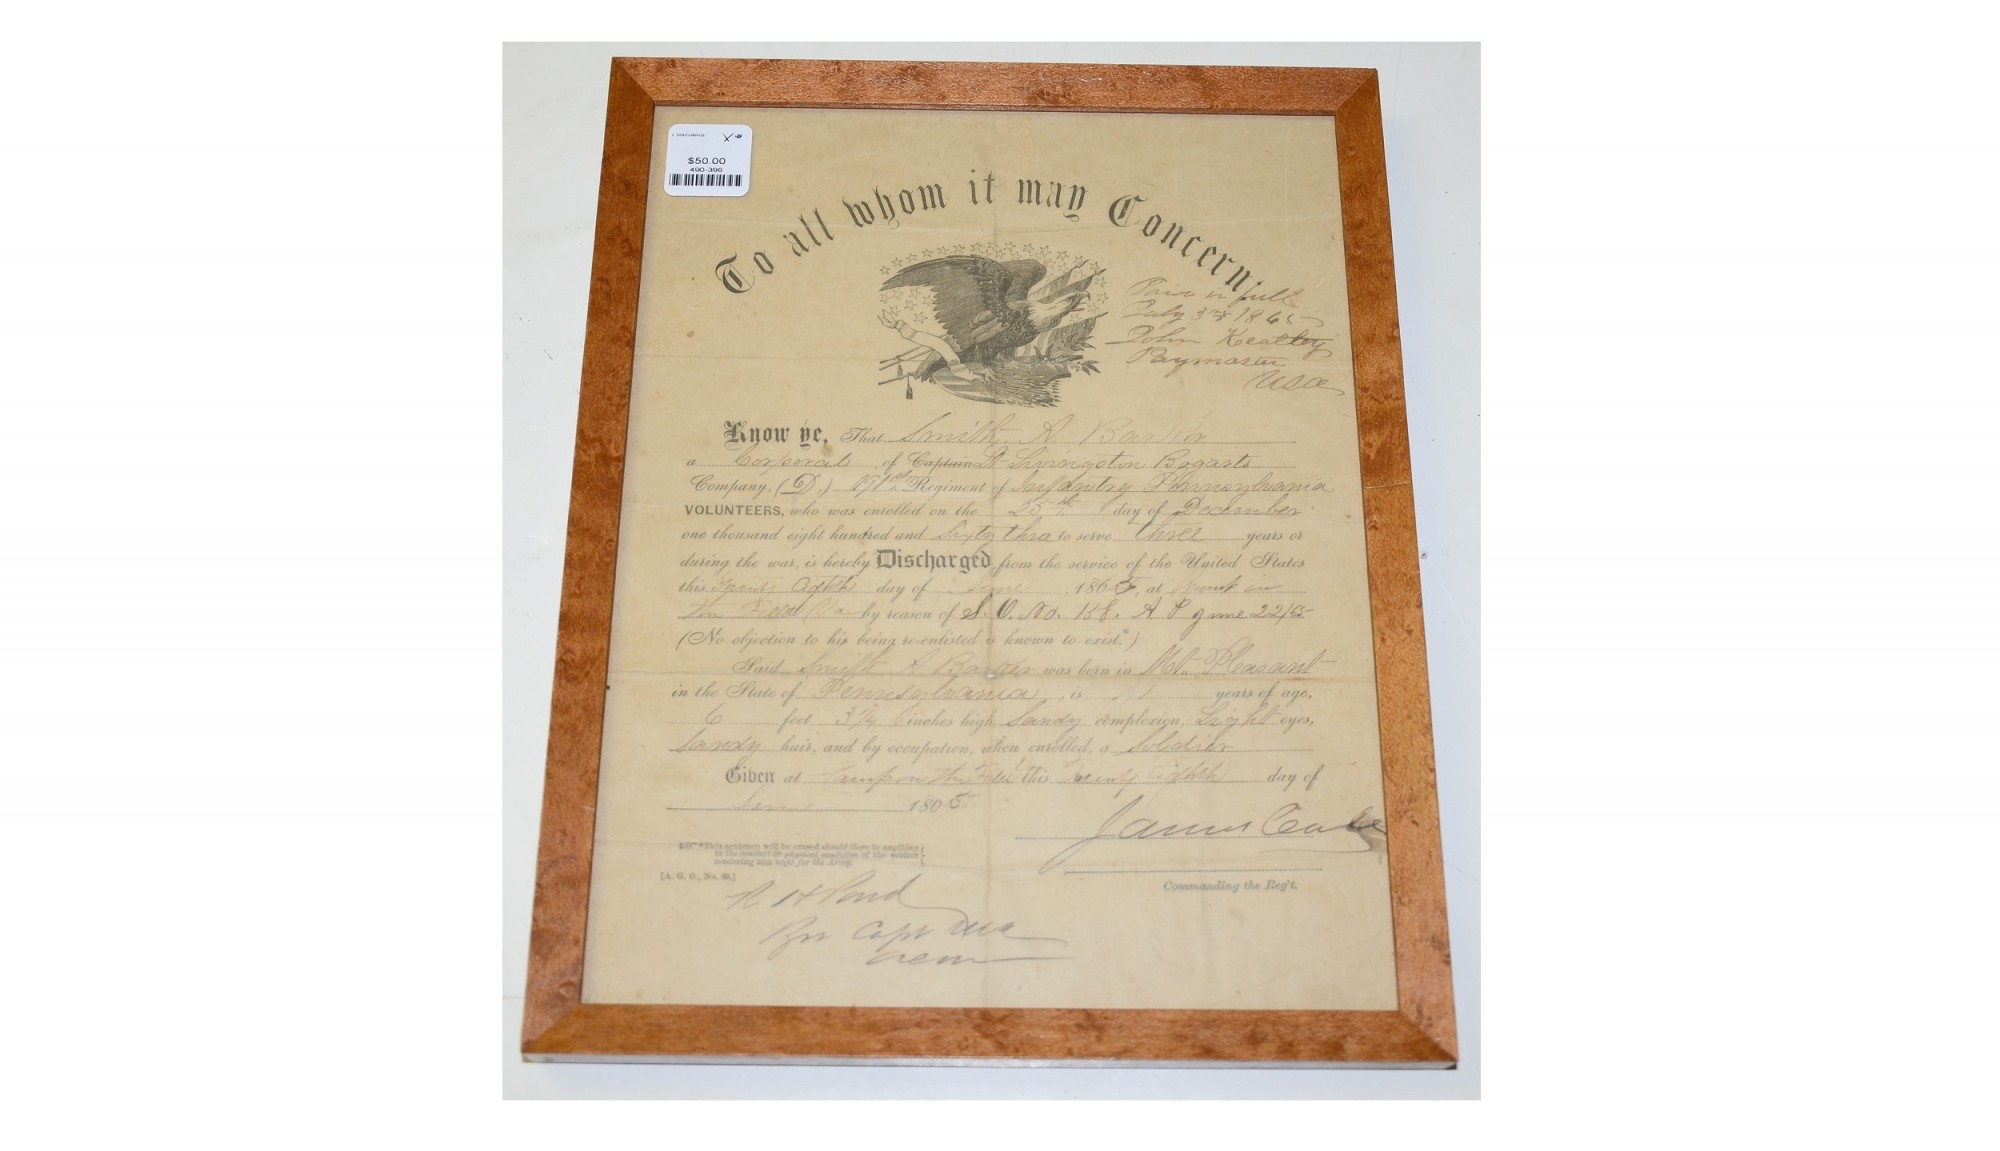 EAGLE DISCHARGE FOR 35TH PENNSYLVANIA & 191ST PENNSYLVANIA SOLDIER